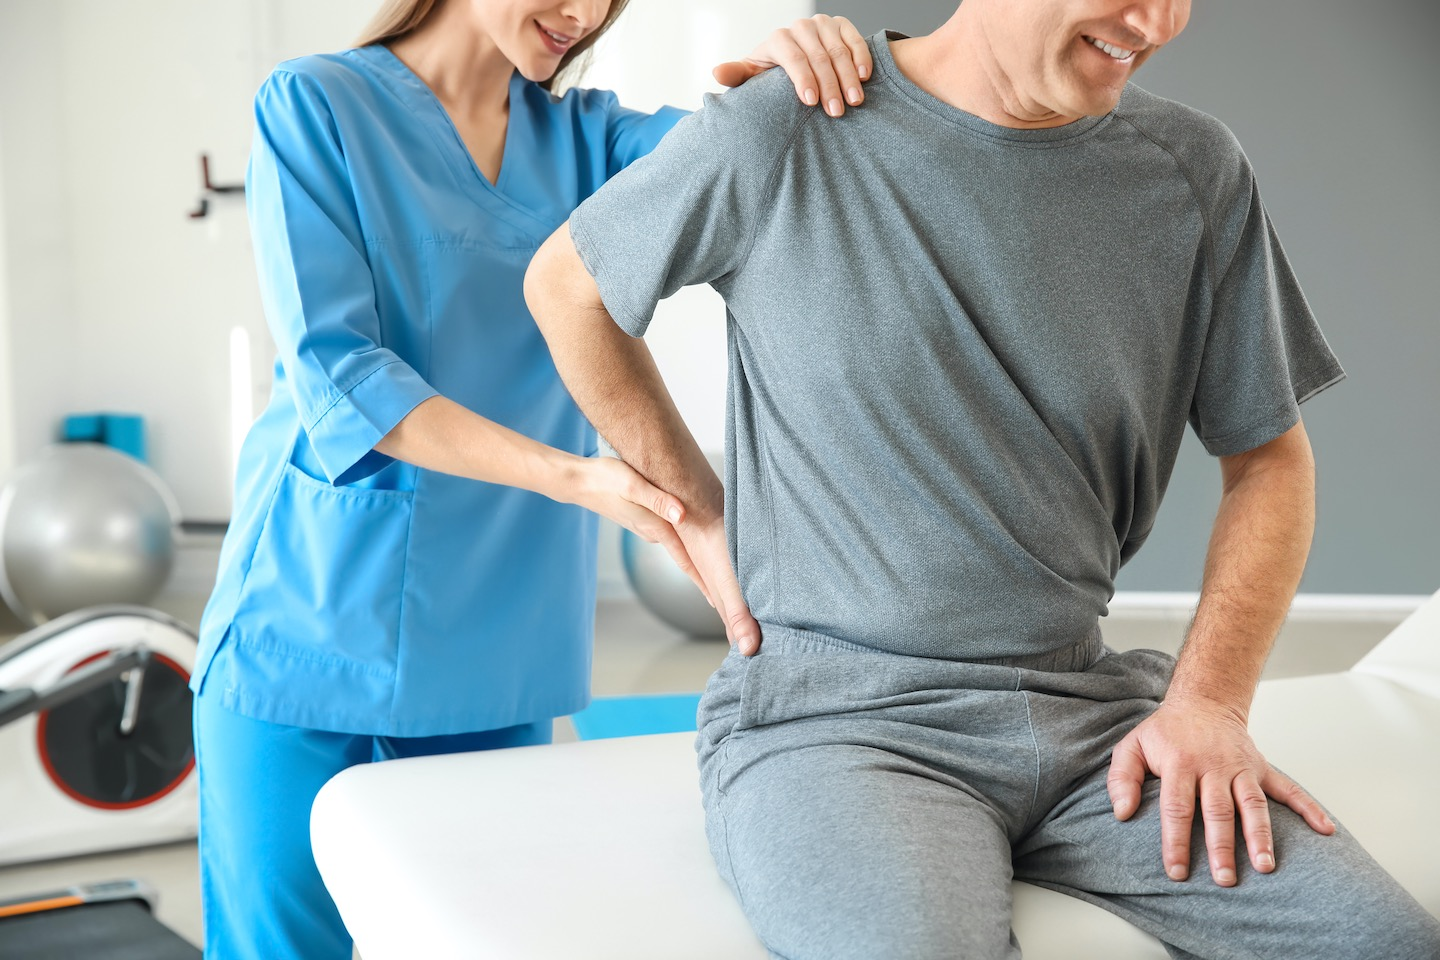 Physiotherapist working with mature patient in rehabilitation center treating a person with back pain